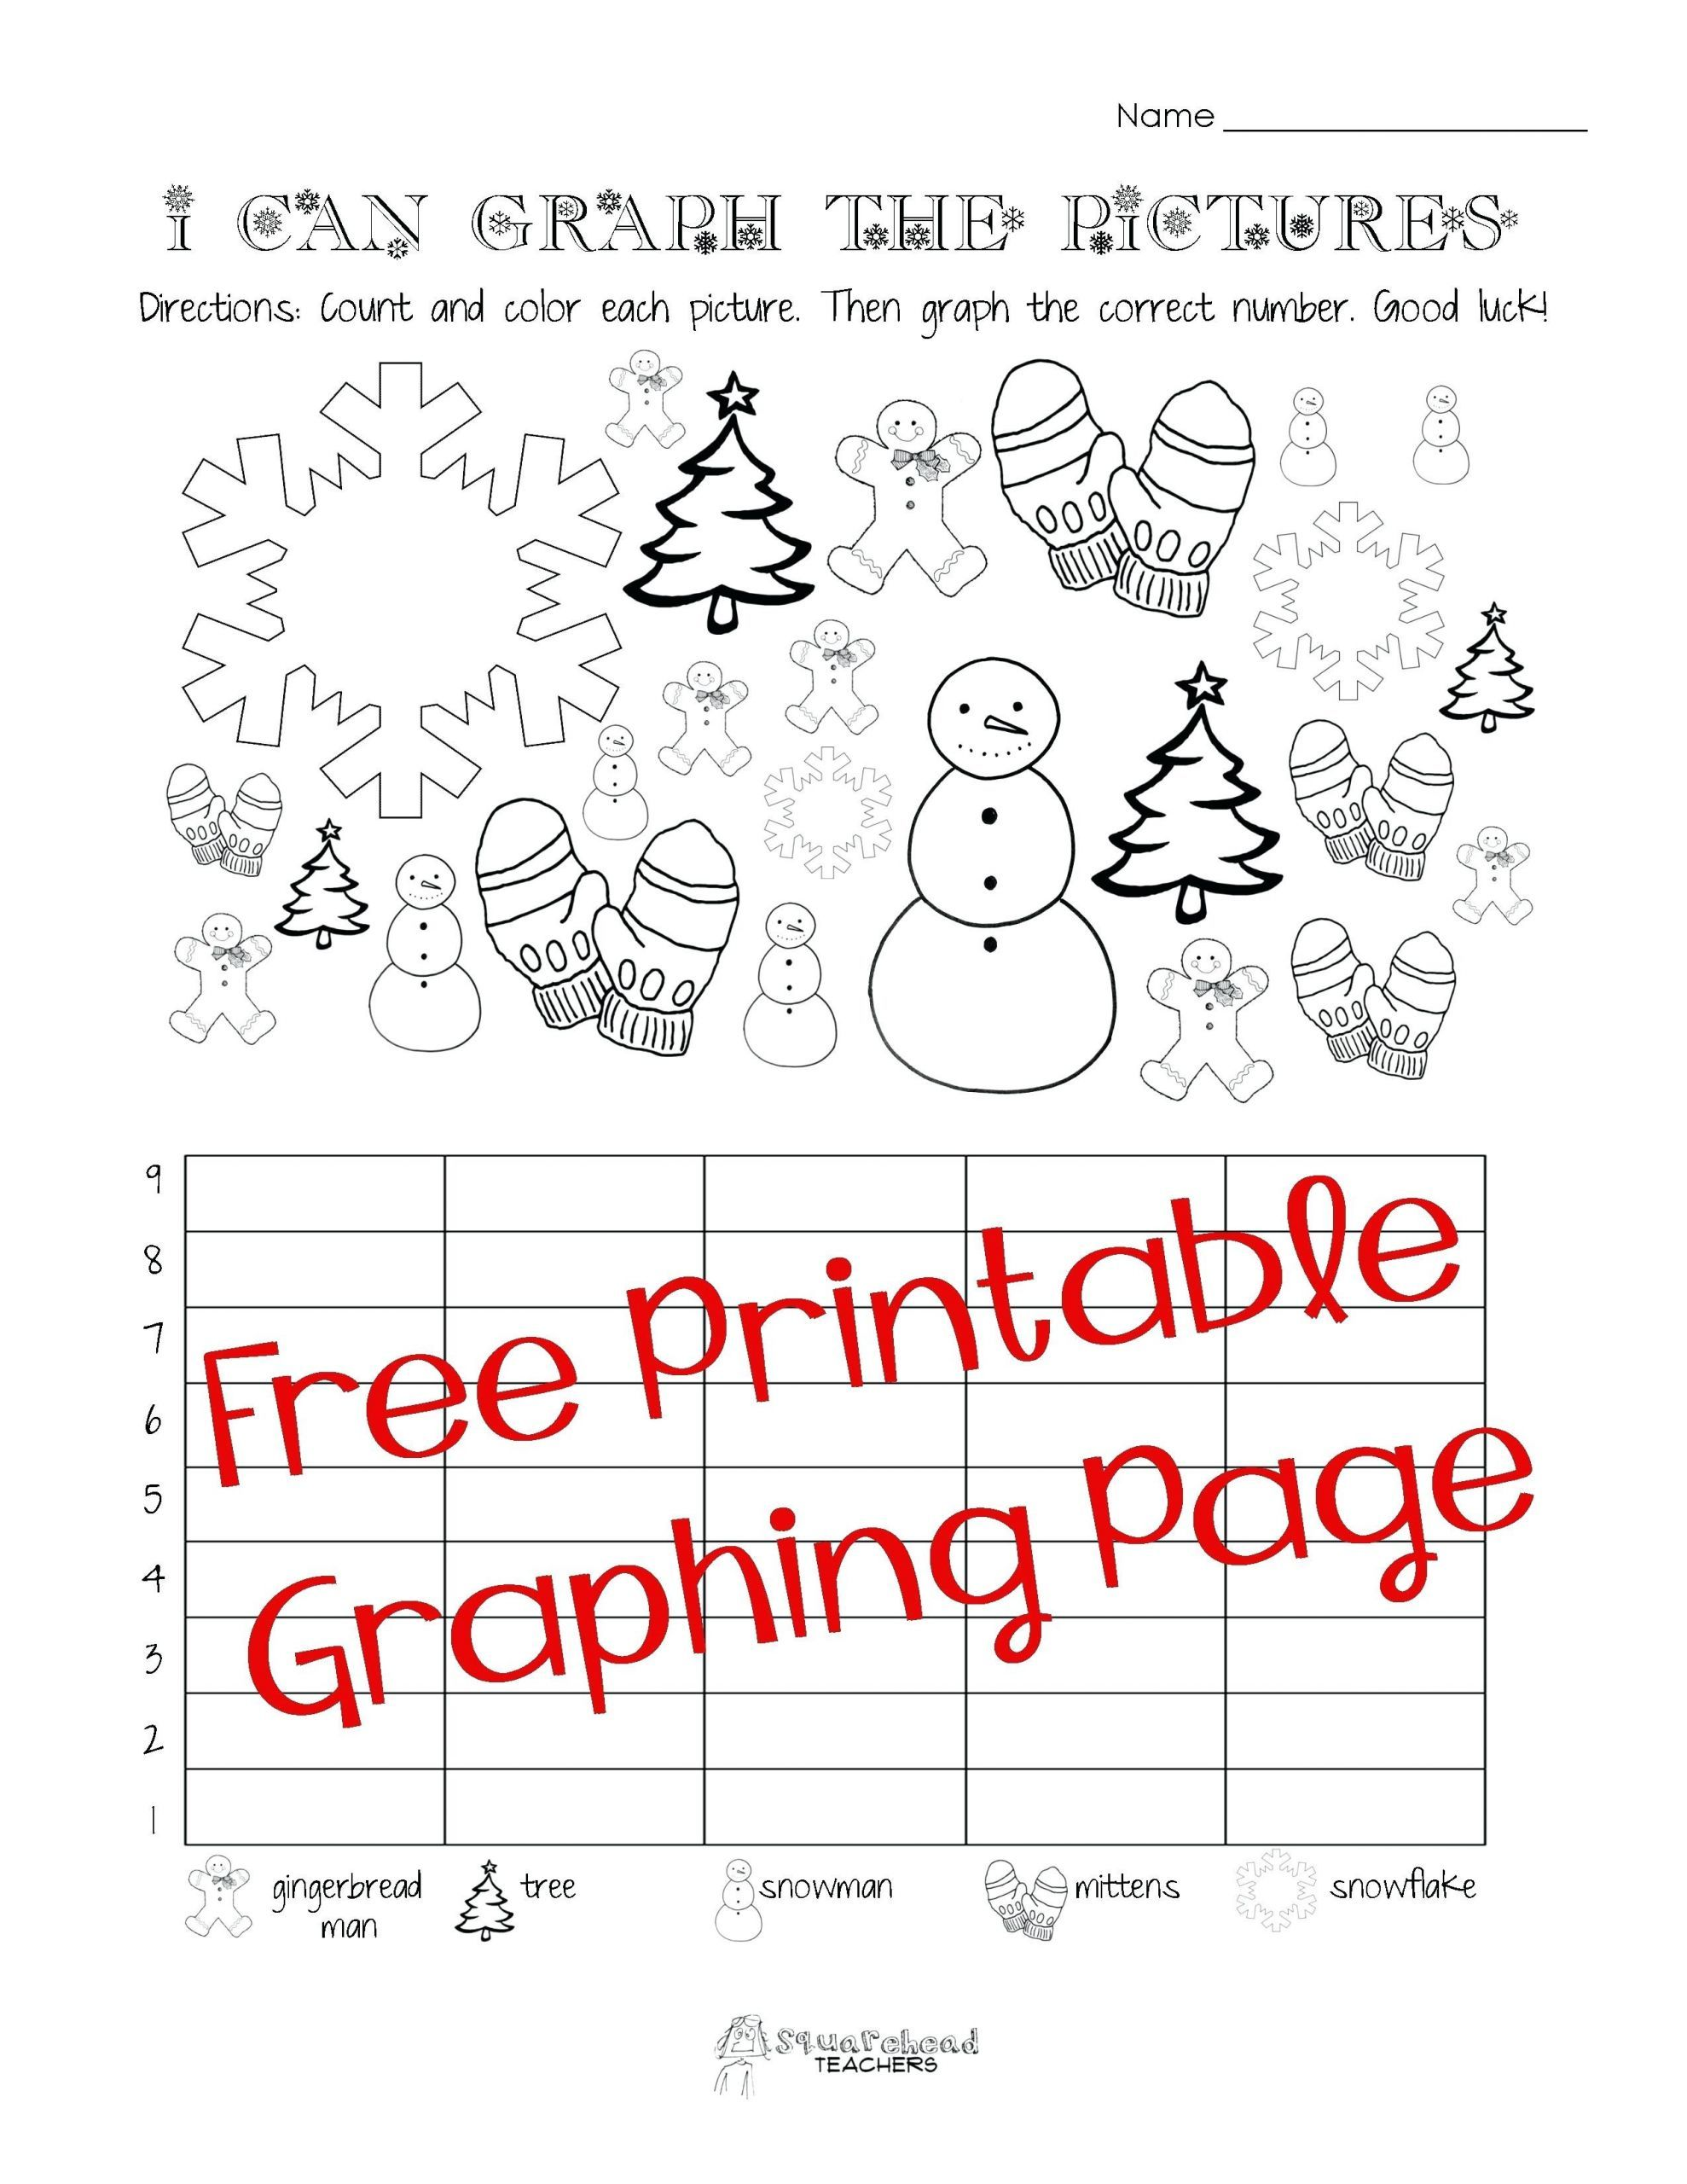 4 Free Math Worksheets First Grade 1 Addition Addition Complete Next Ten Free Christmas Math Worksheets Christmas Worksheets Kindergarten Christmas Worksheets